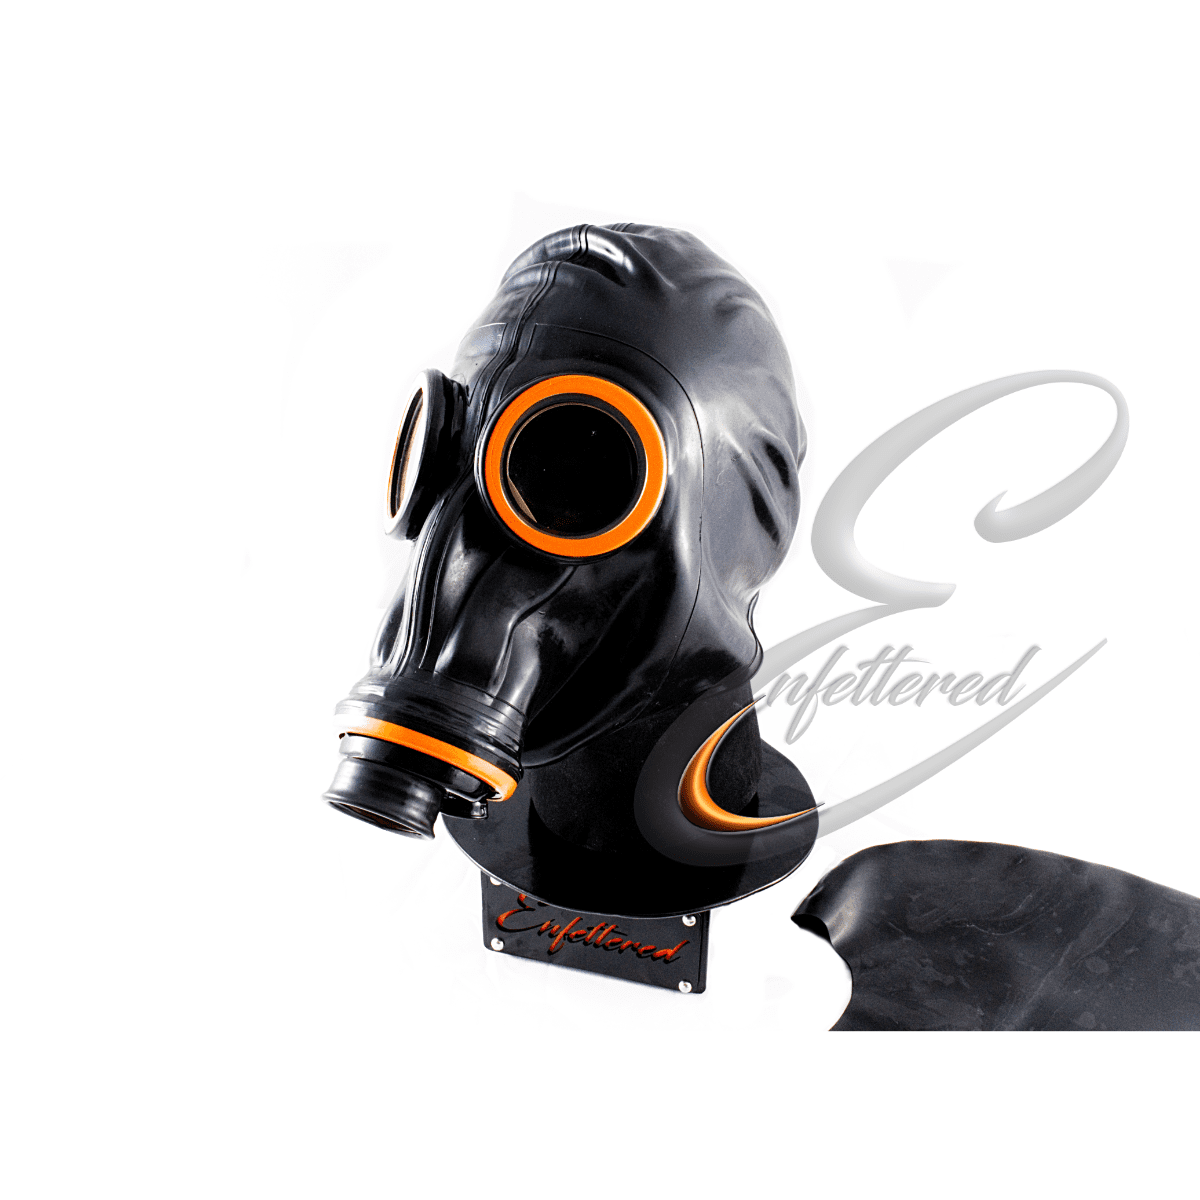 Enfettered GasMask Set